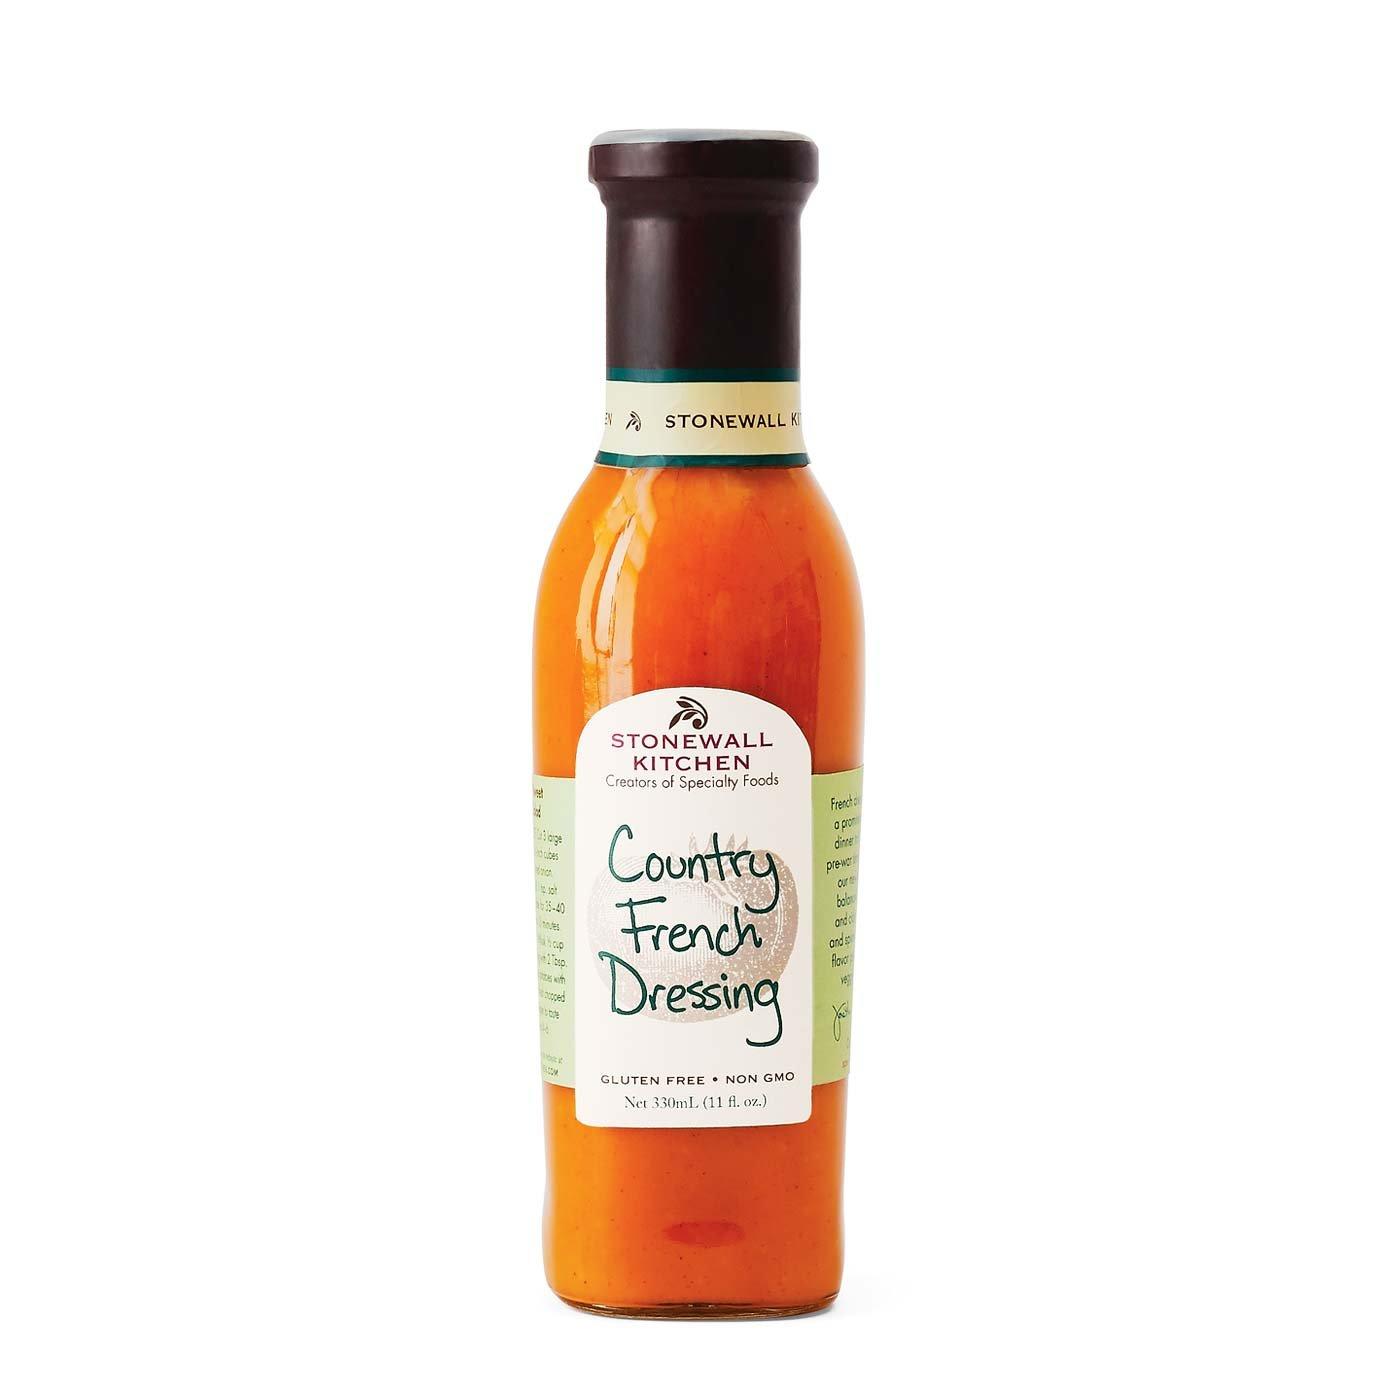 Stonewall Kitchen Country French Dressing, 11 oz.